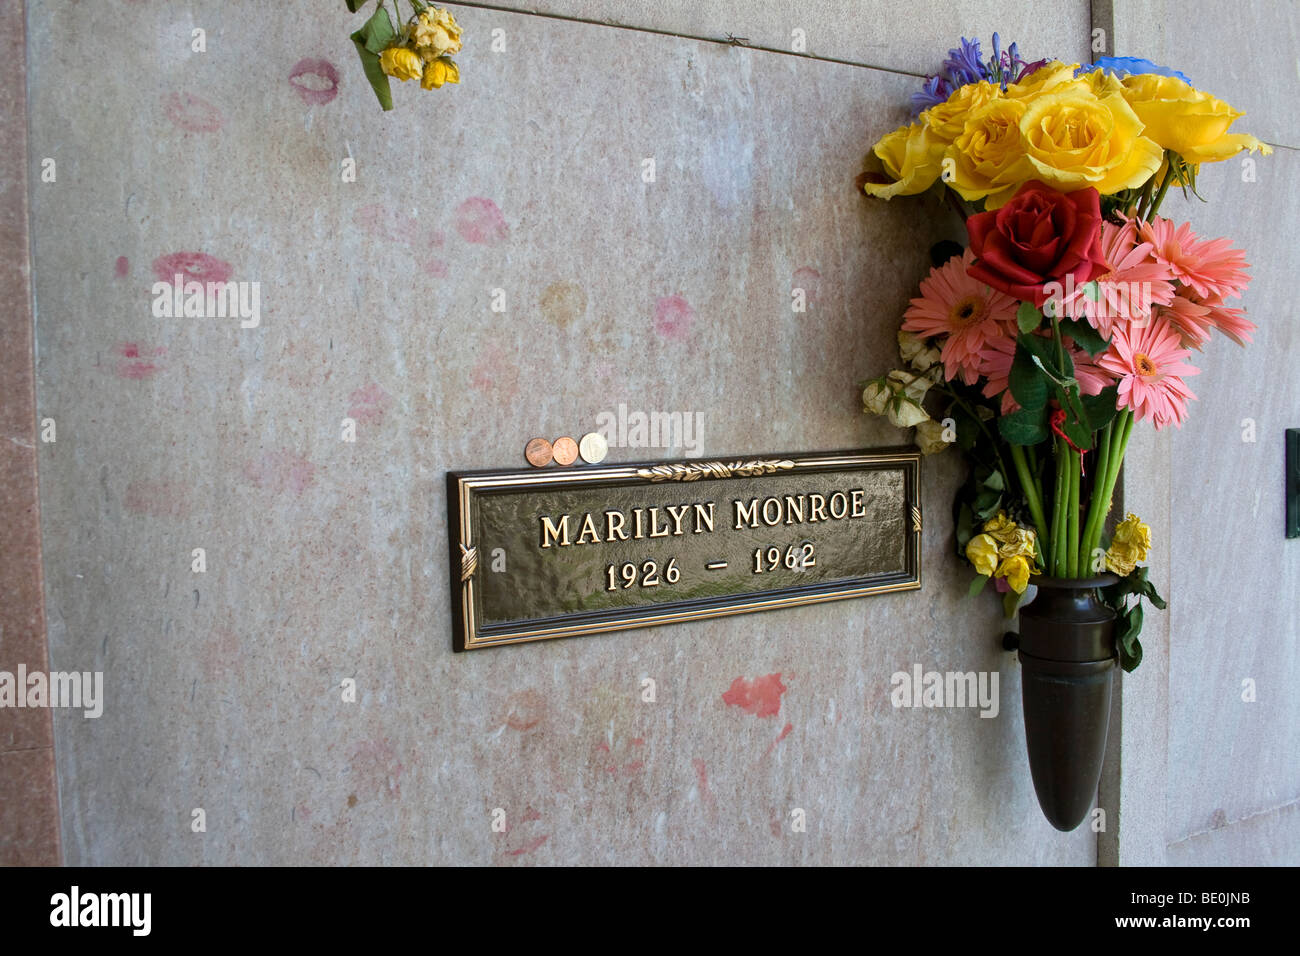 Marilyn Monroe Grave with lipstick kisses, Westwood Memorial Cemetery, Los Angles, California, USA - Stock Image